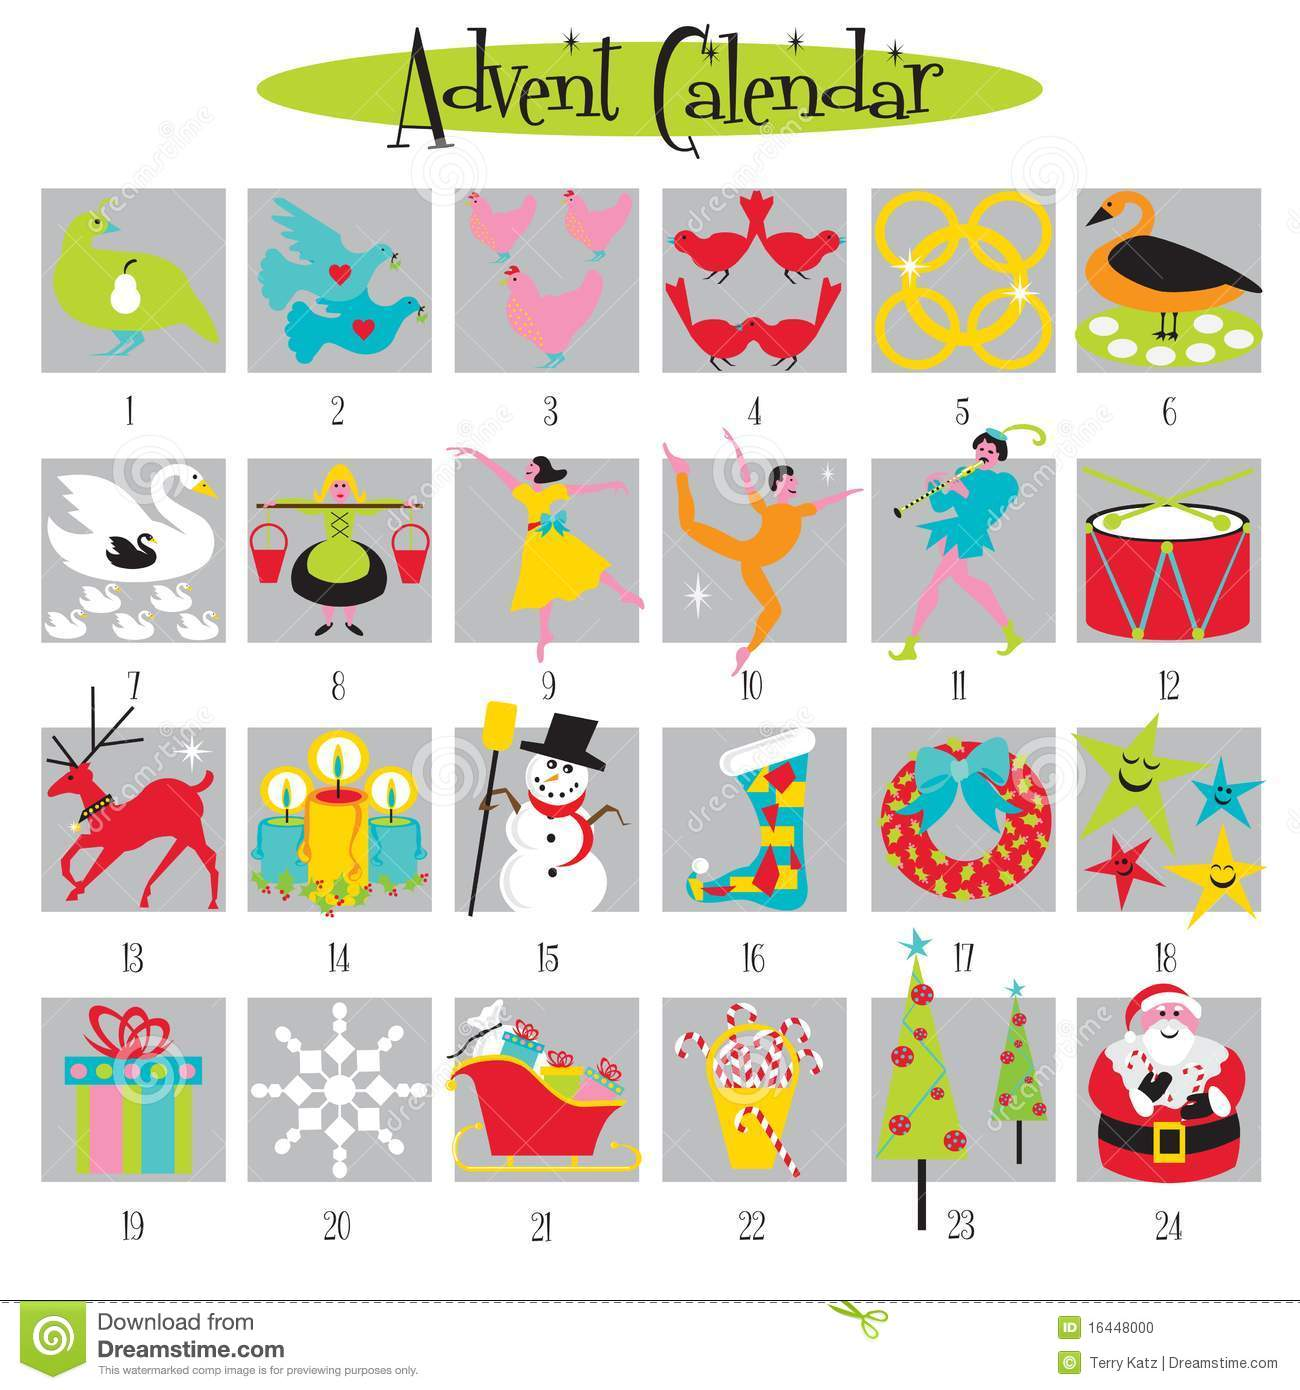 Clipart advent calendar graphic transparent 12 Days Of Christmas And Advent Calendar Stock Photo - Image: 16448000 graphic transparent